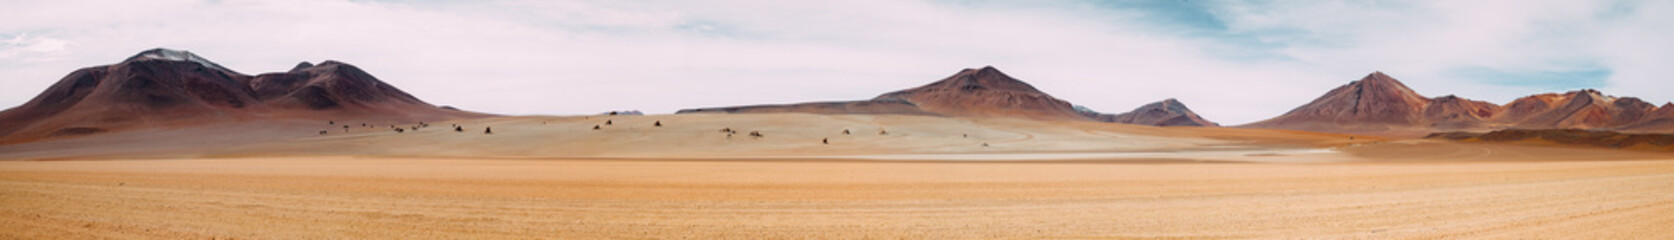 In de dag Droogte The vast expanse of nothingness - Atacama Desert - Bolivia